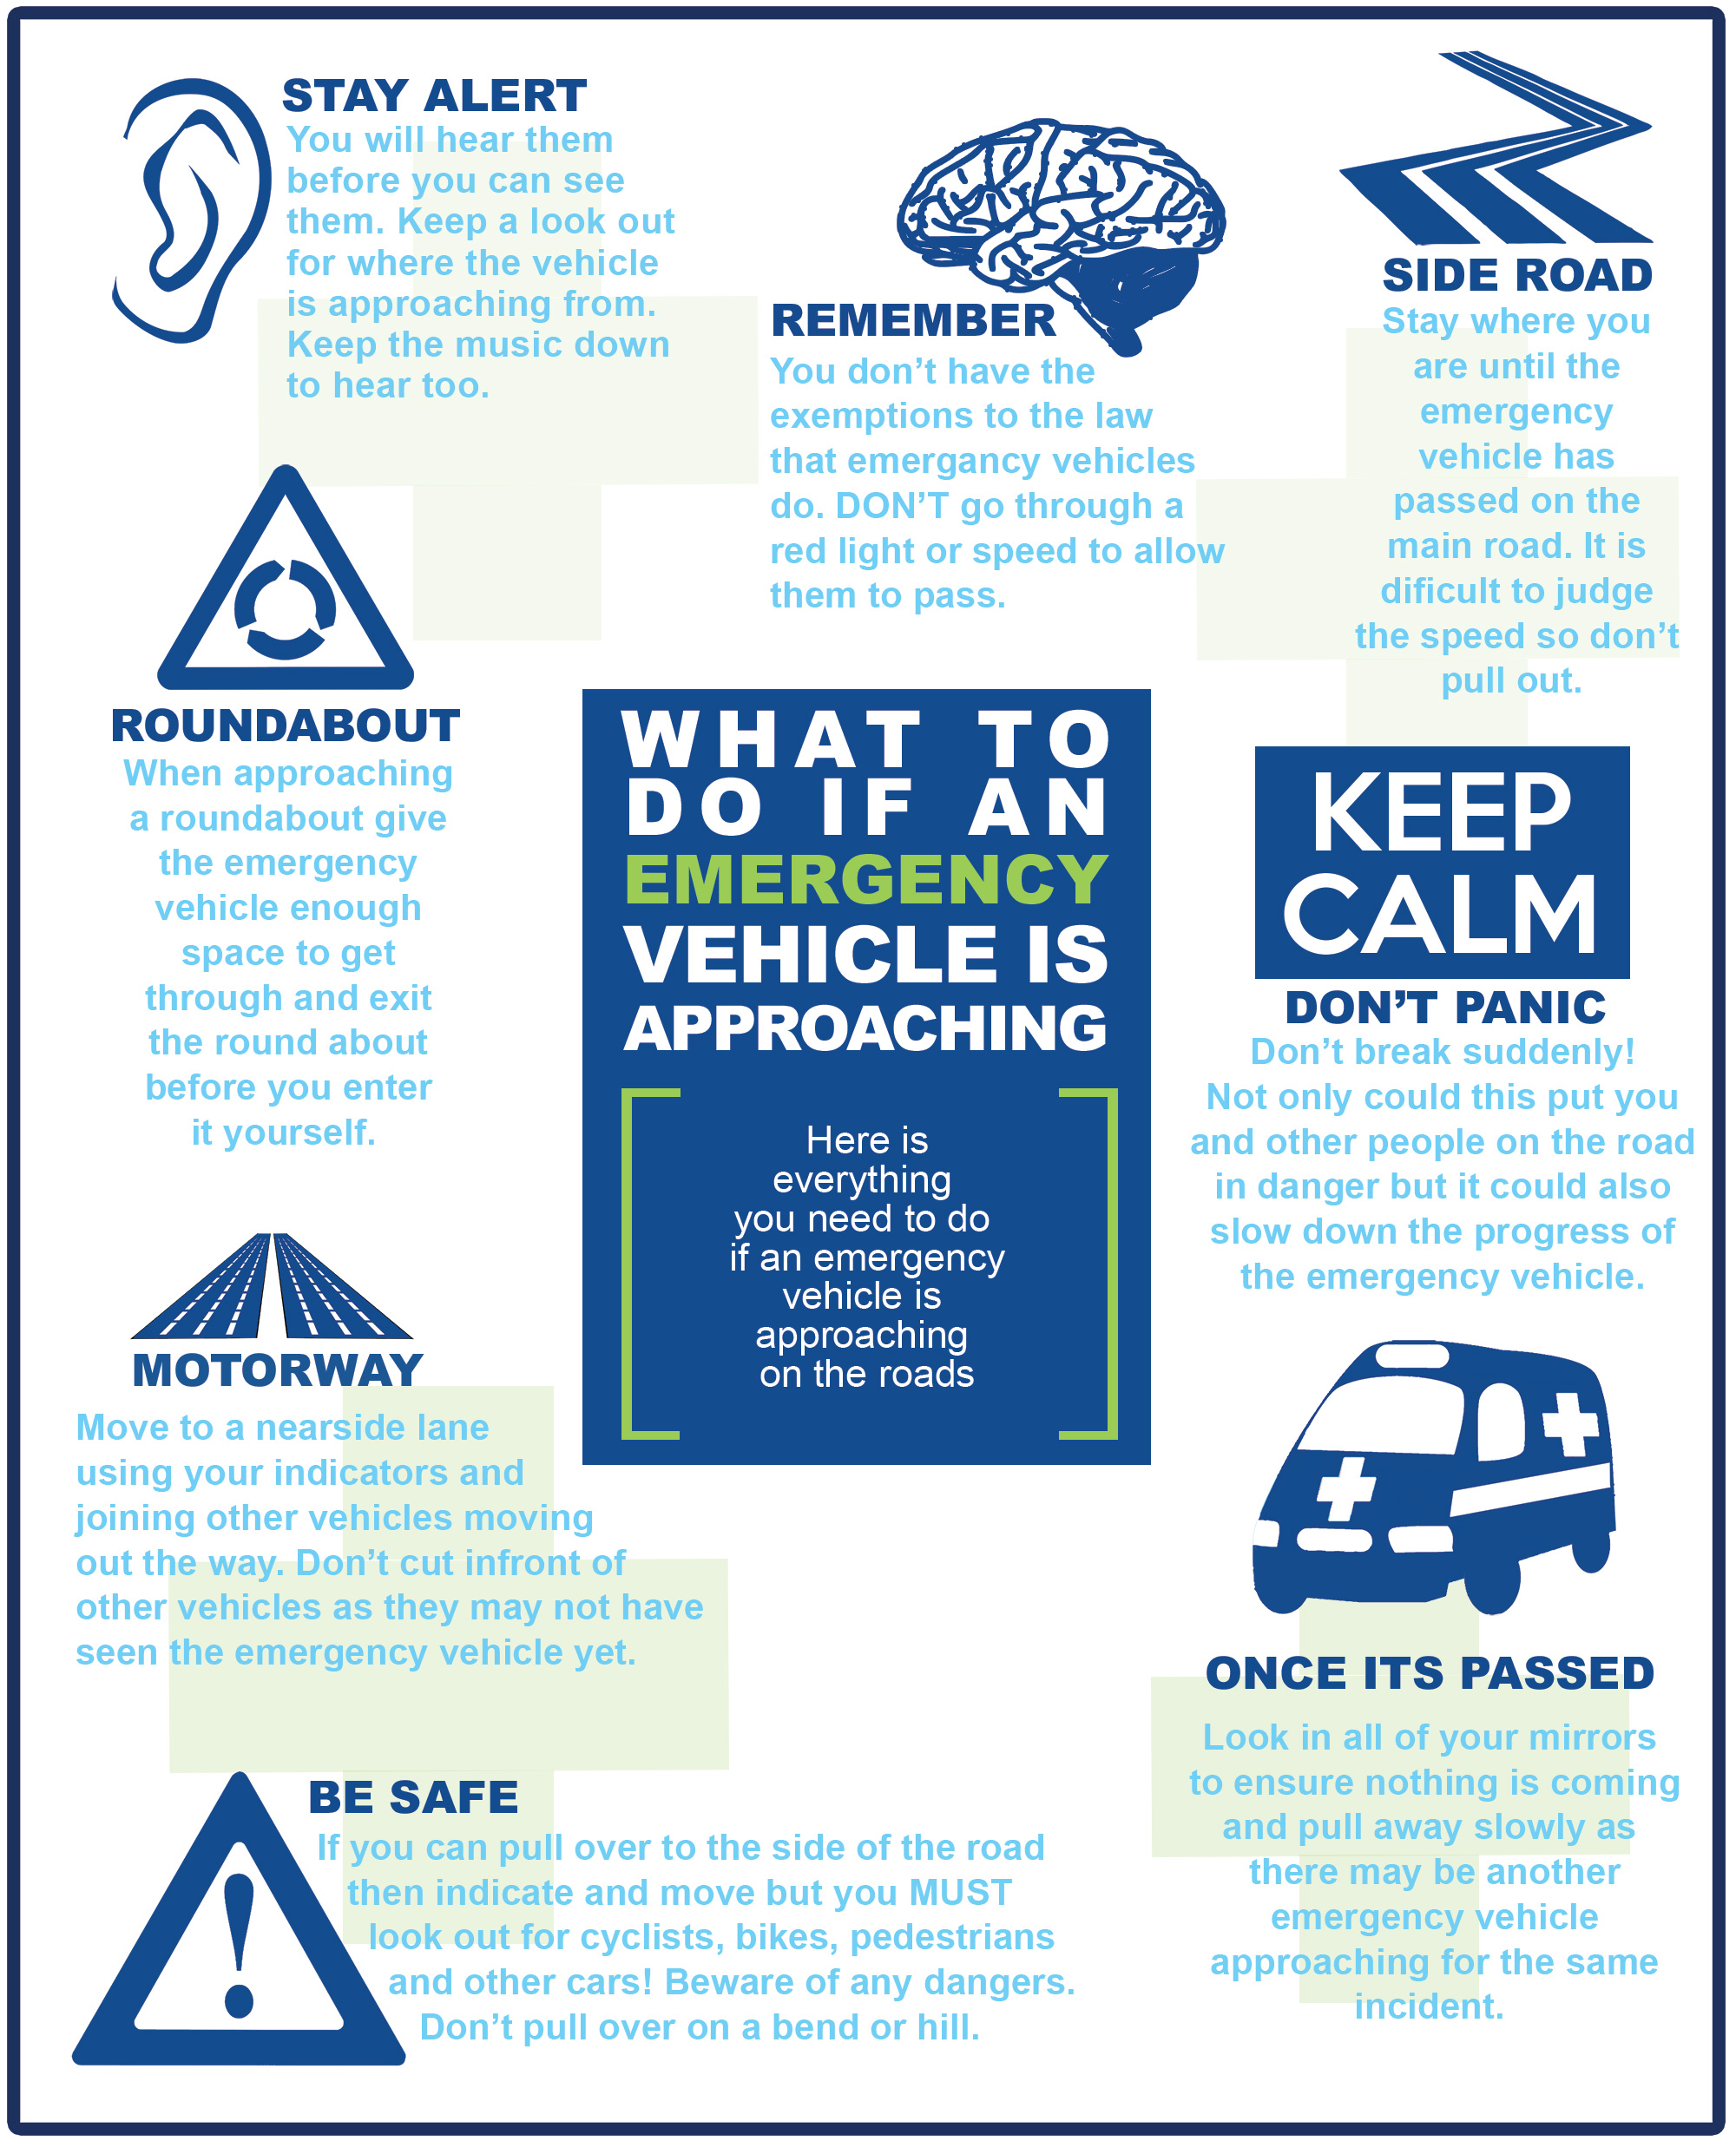 Infographic - What to do if an emergency vehicle is approaching